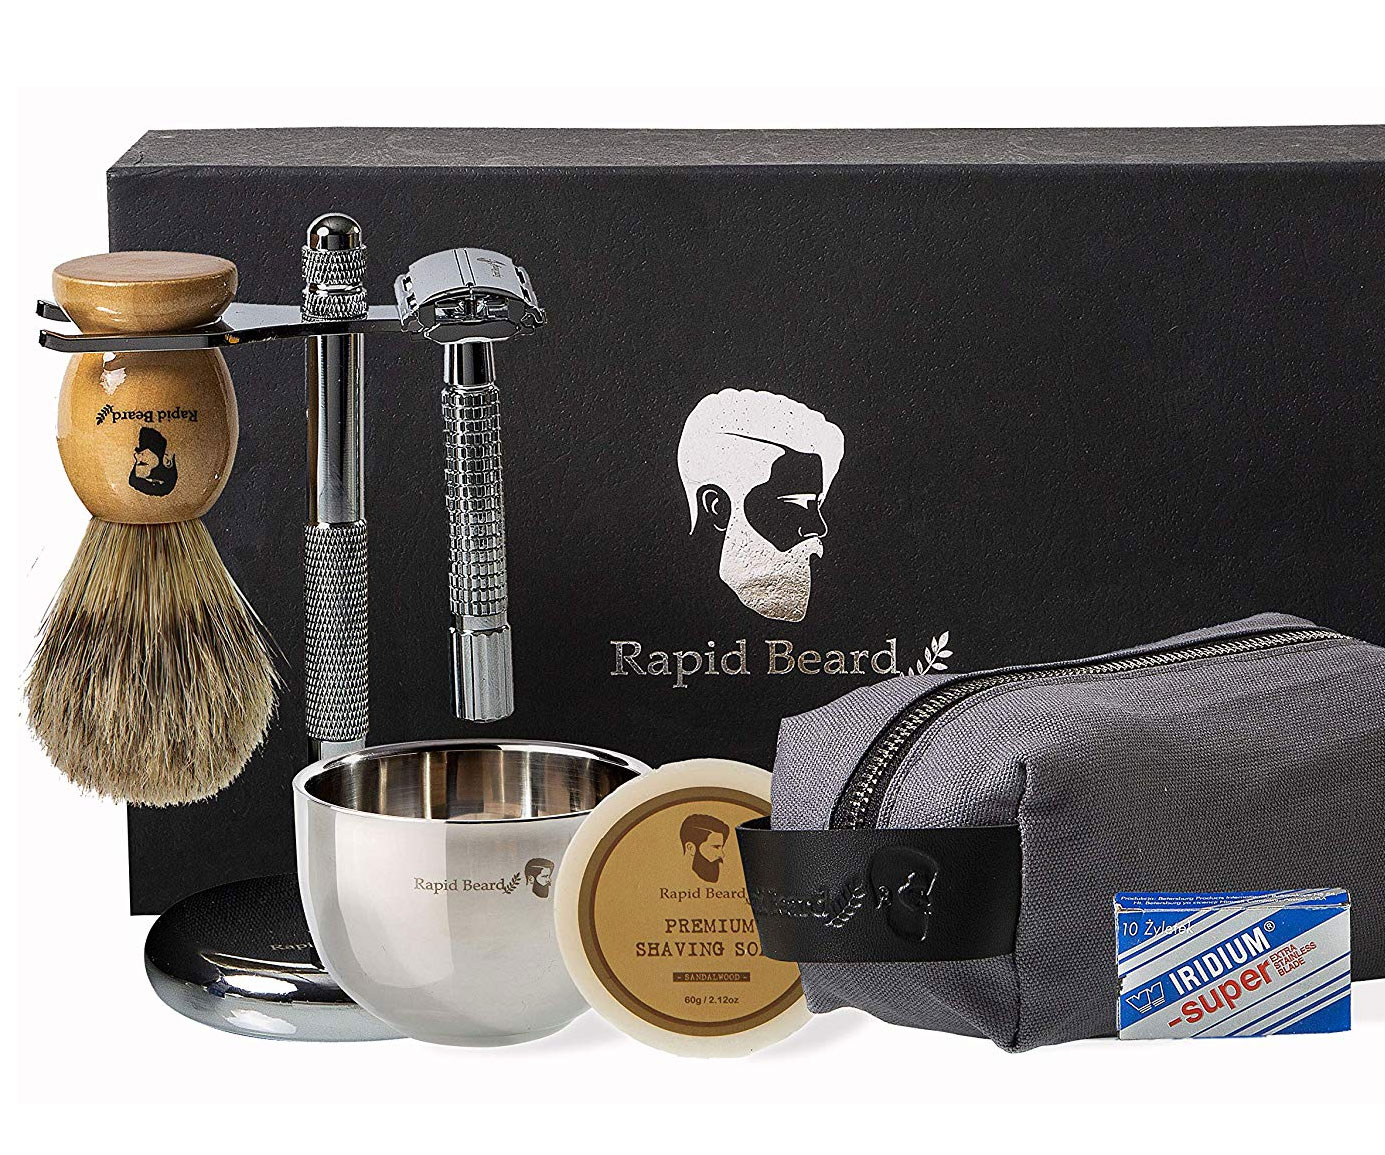 The All-In-One Wet Shaving Kit